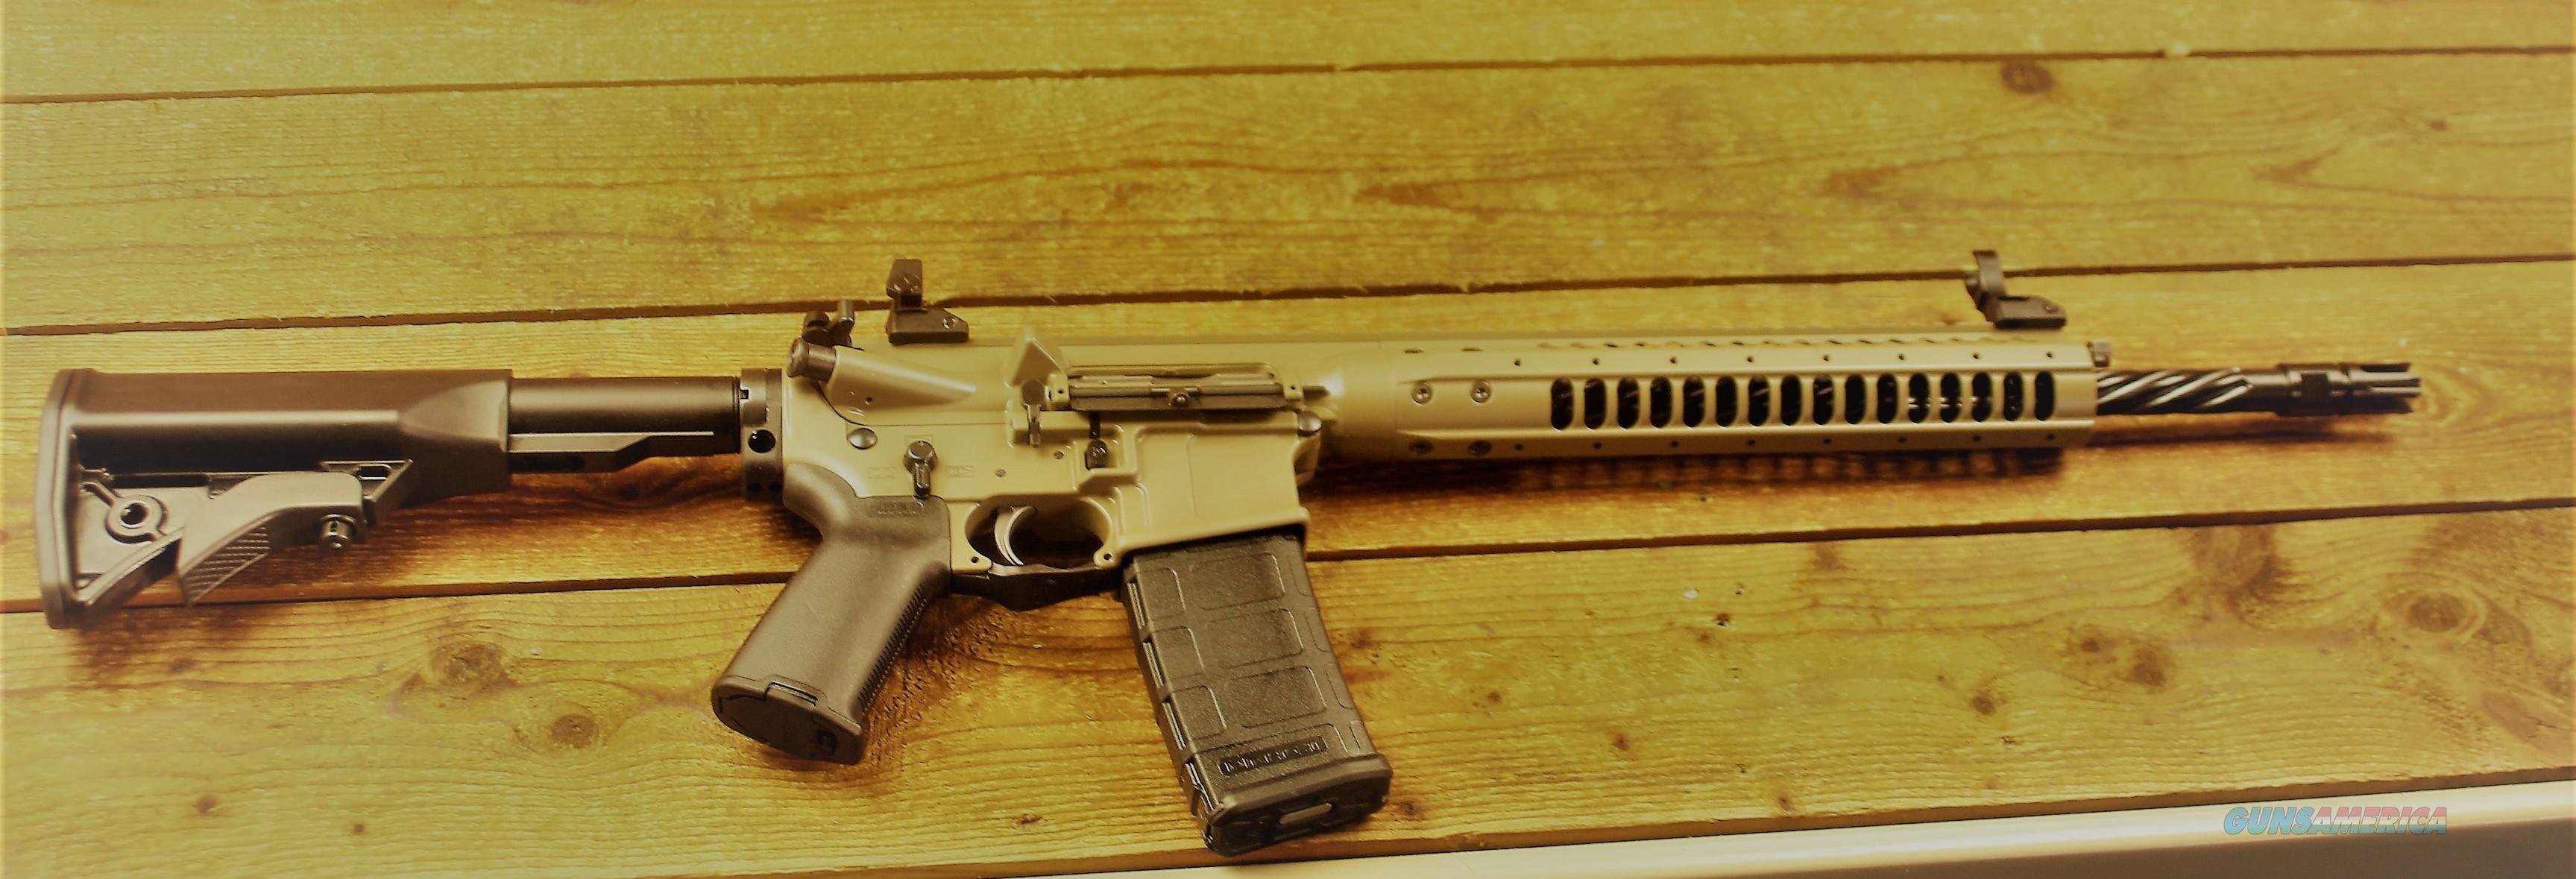 (SALE) Easy Pay $122 LAYAWAY  Sugg. Retail Price: MSRP $2,549.00  LWRC Carbine Flat Dark Earth fde SPR M6 IC SPR AR-15 ICR5CK16SPR   Guns > Rifles > LWRC Rifles